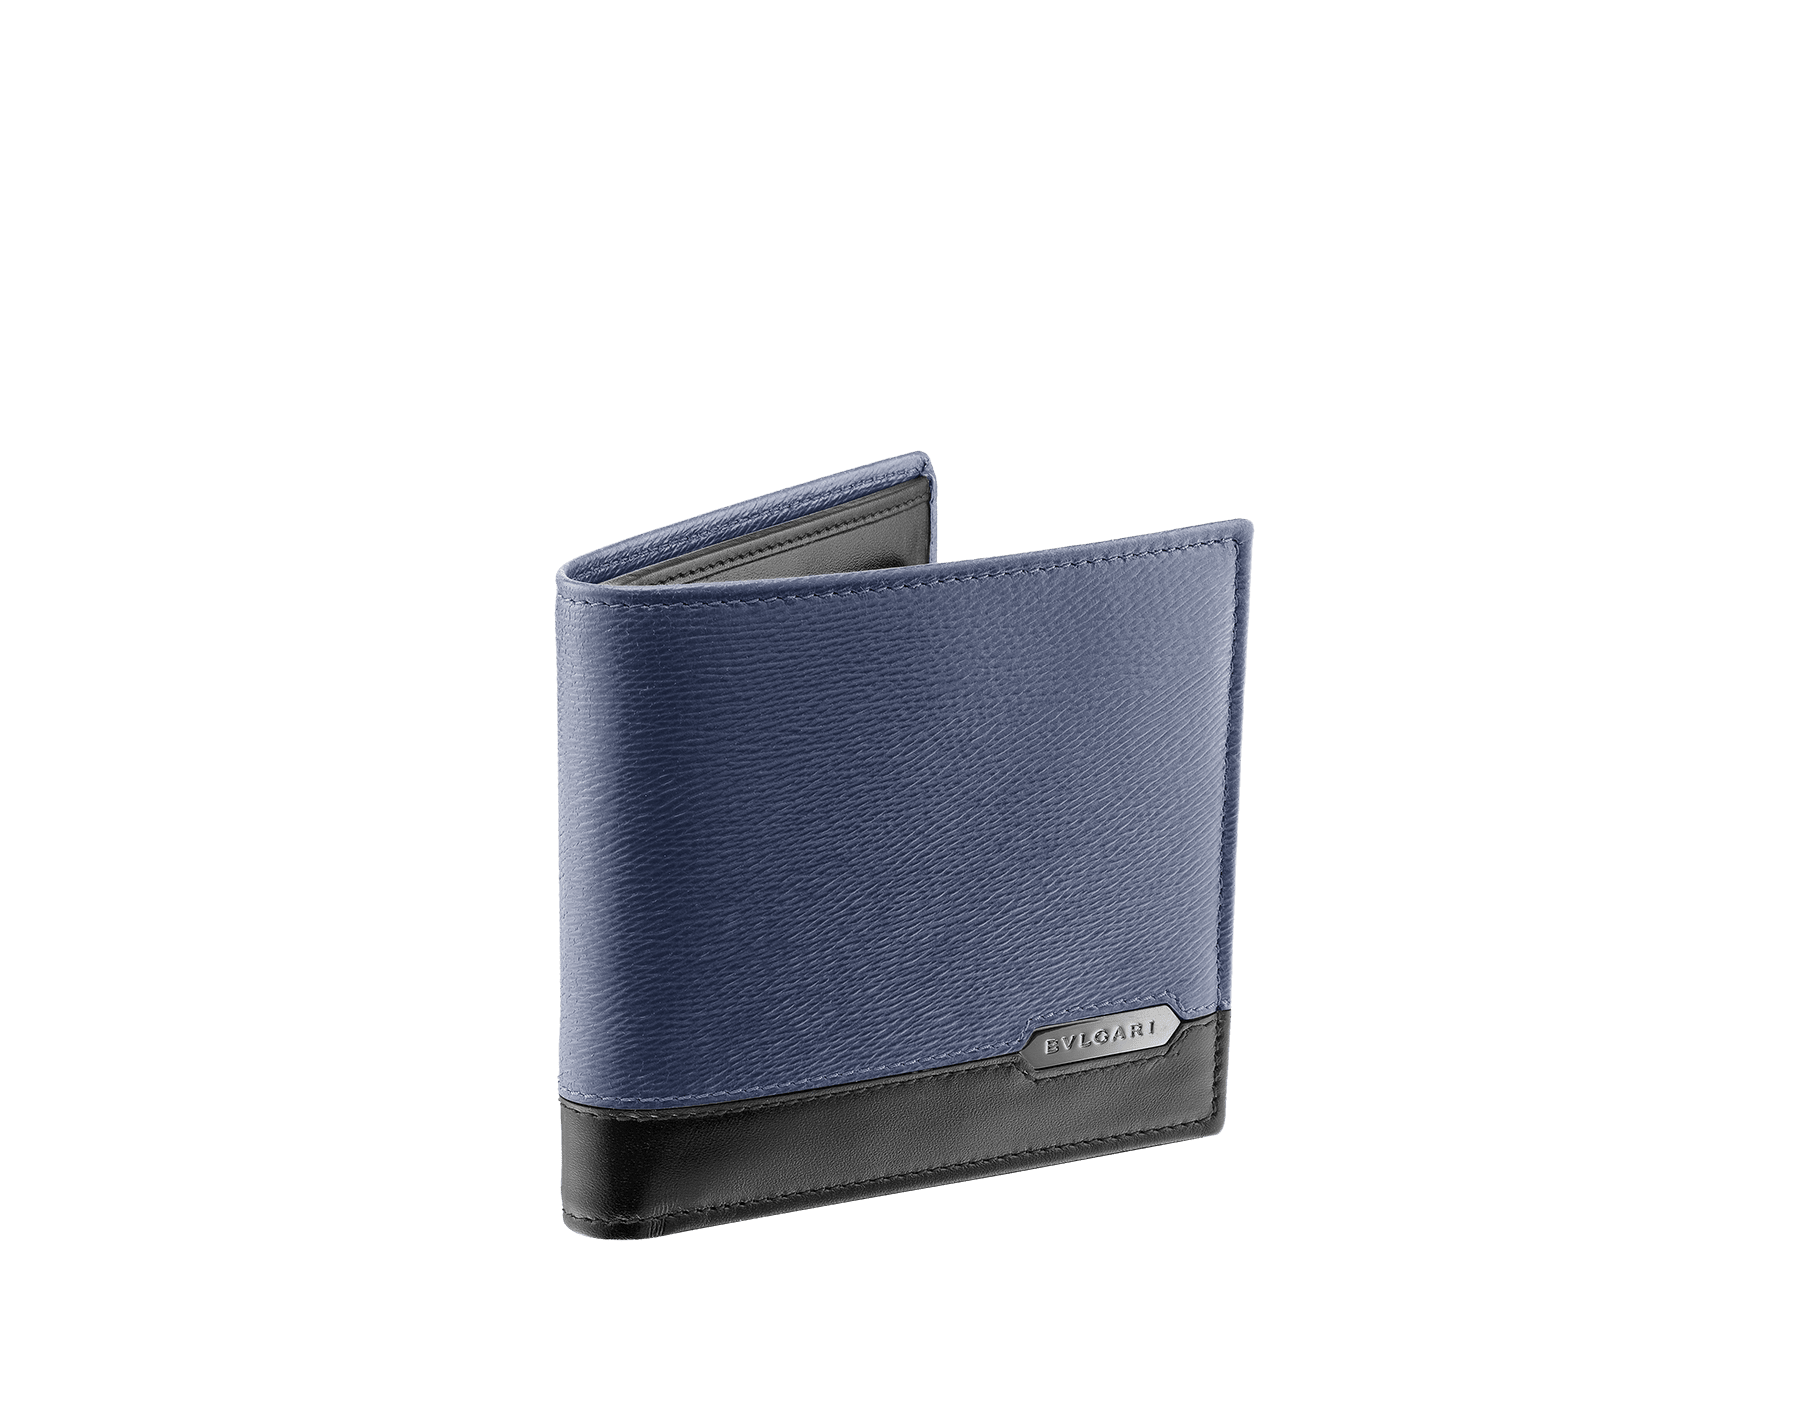 Wallet in denim sapphire grazed calf leather and black calf leather. Bulgari logo on metal plate featuring the Scaglie motif finished in dark ruthenium. 280901 image 1